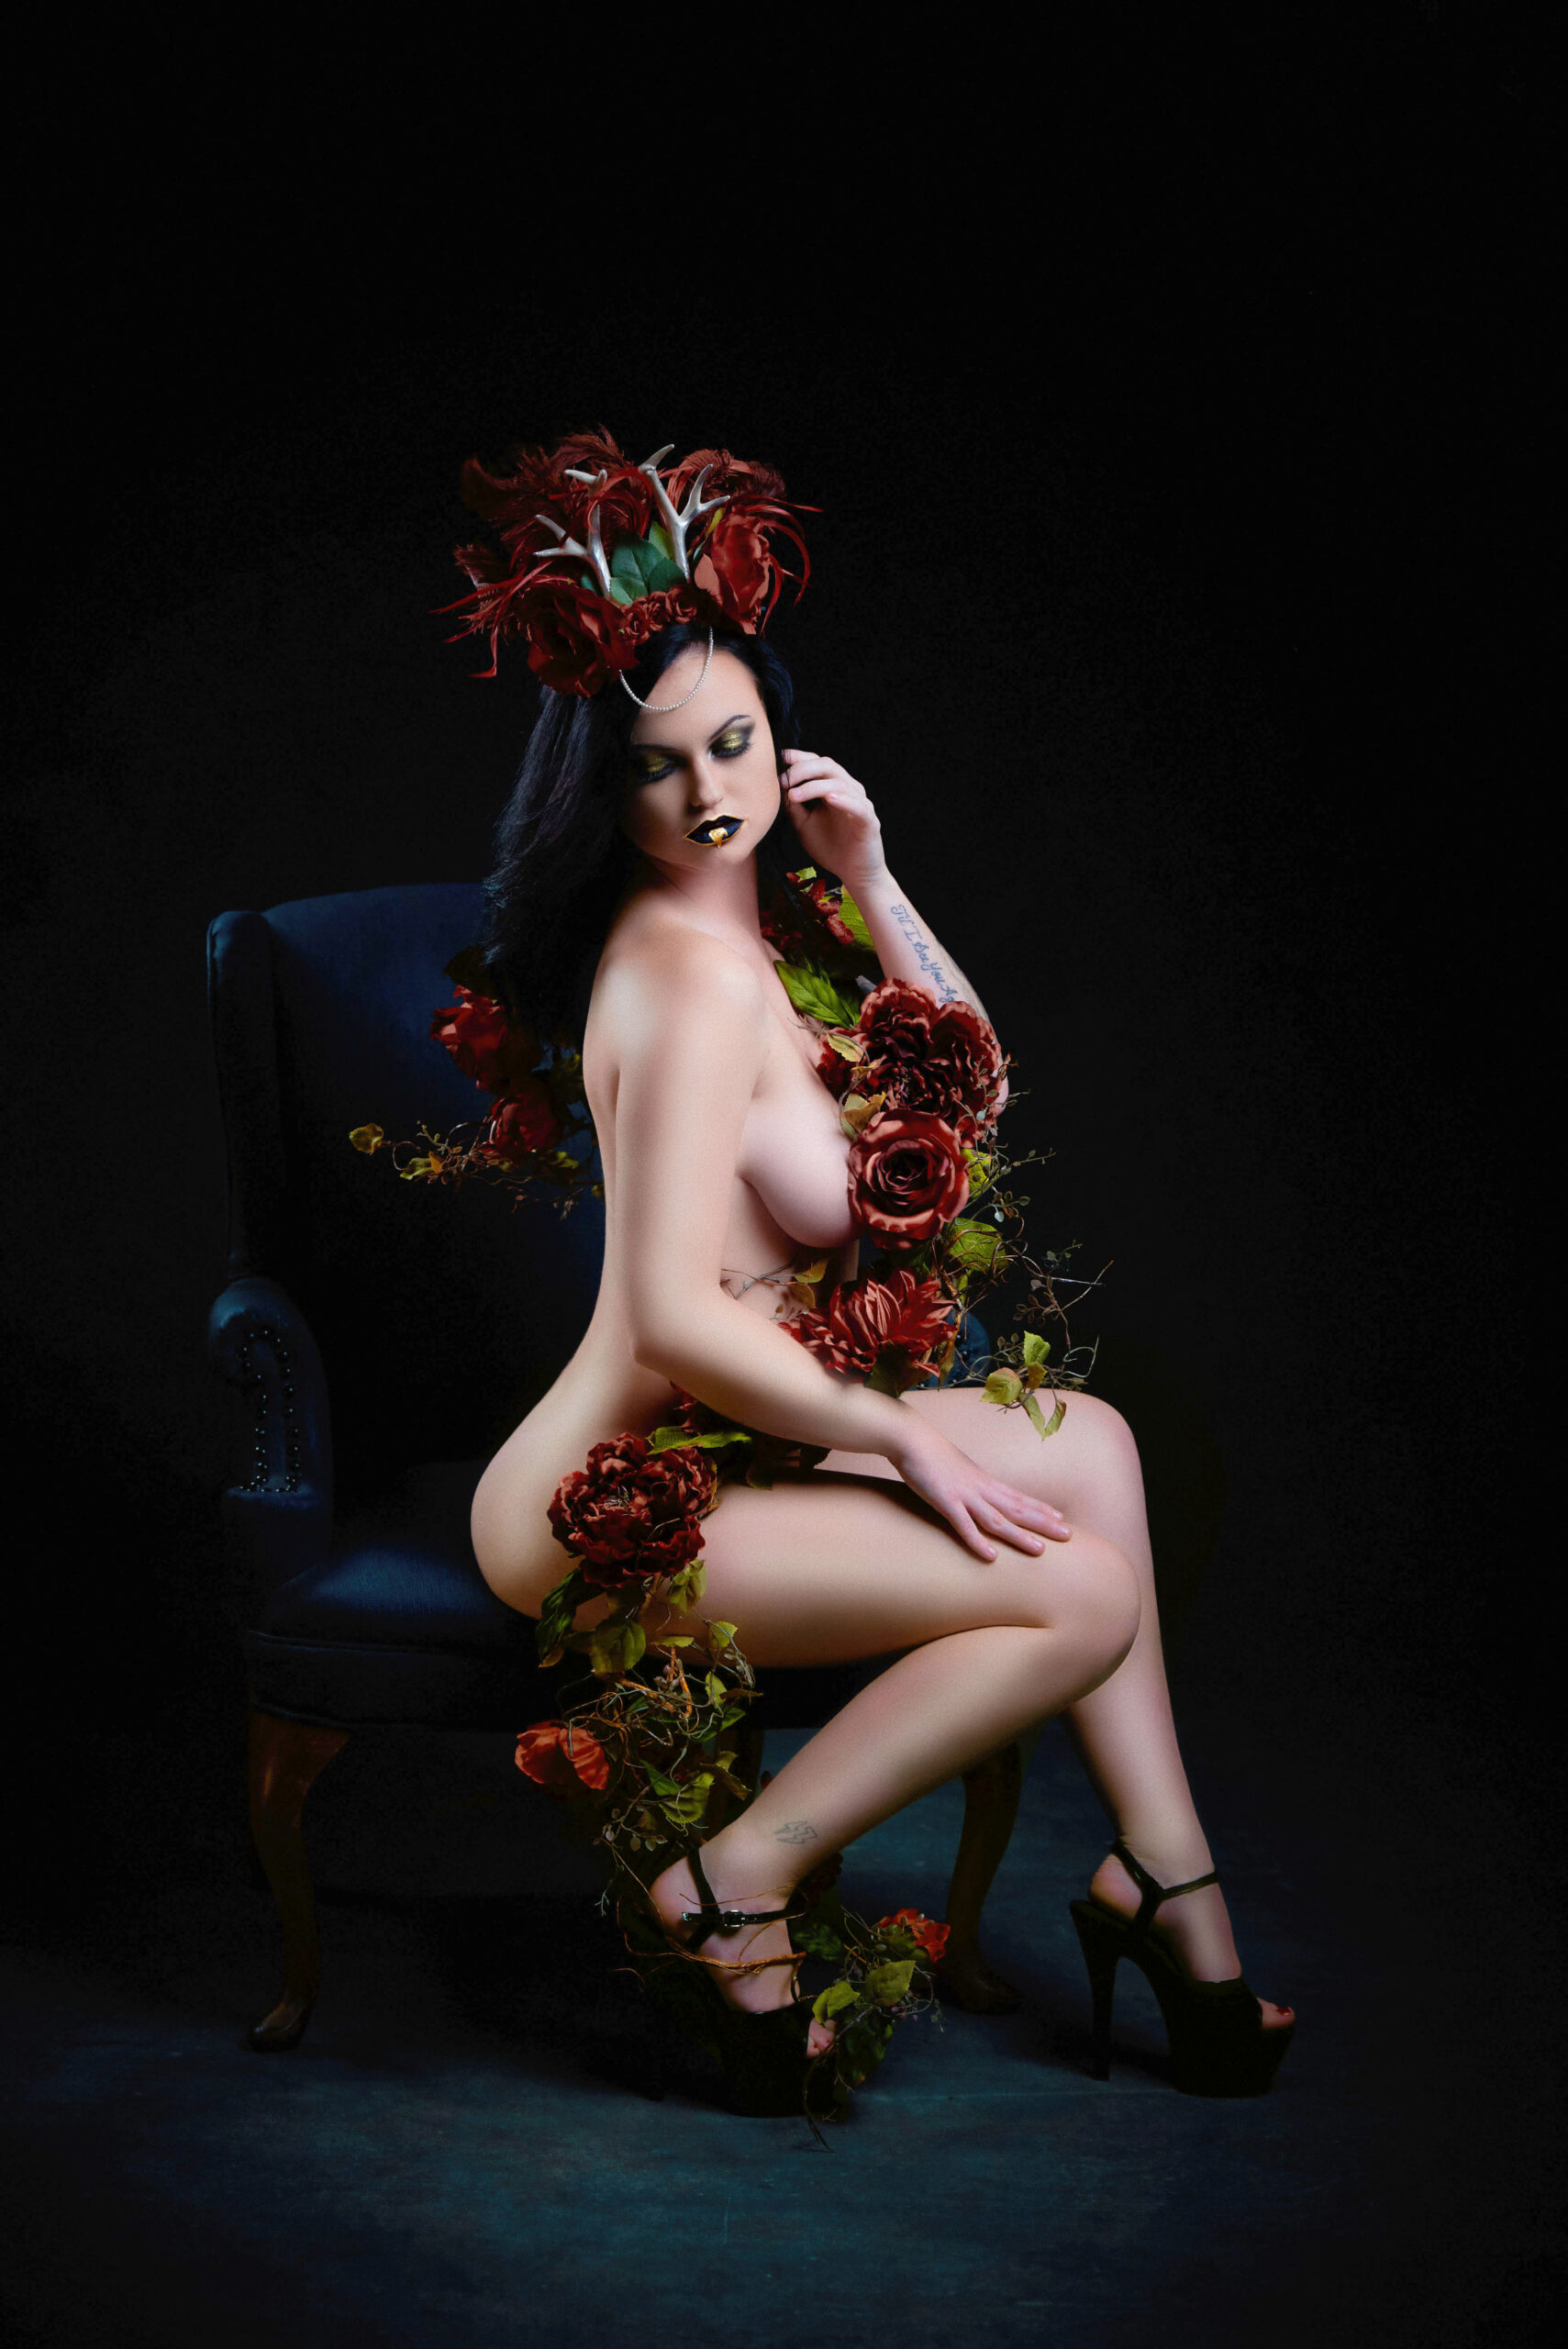 Nude Portrait of a woman shrouded in roses